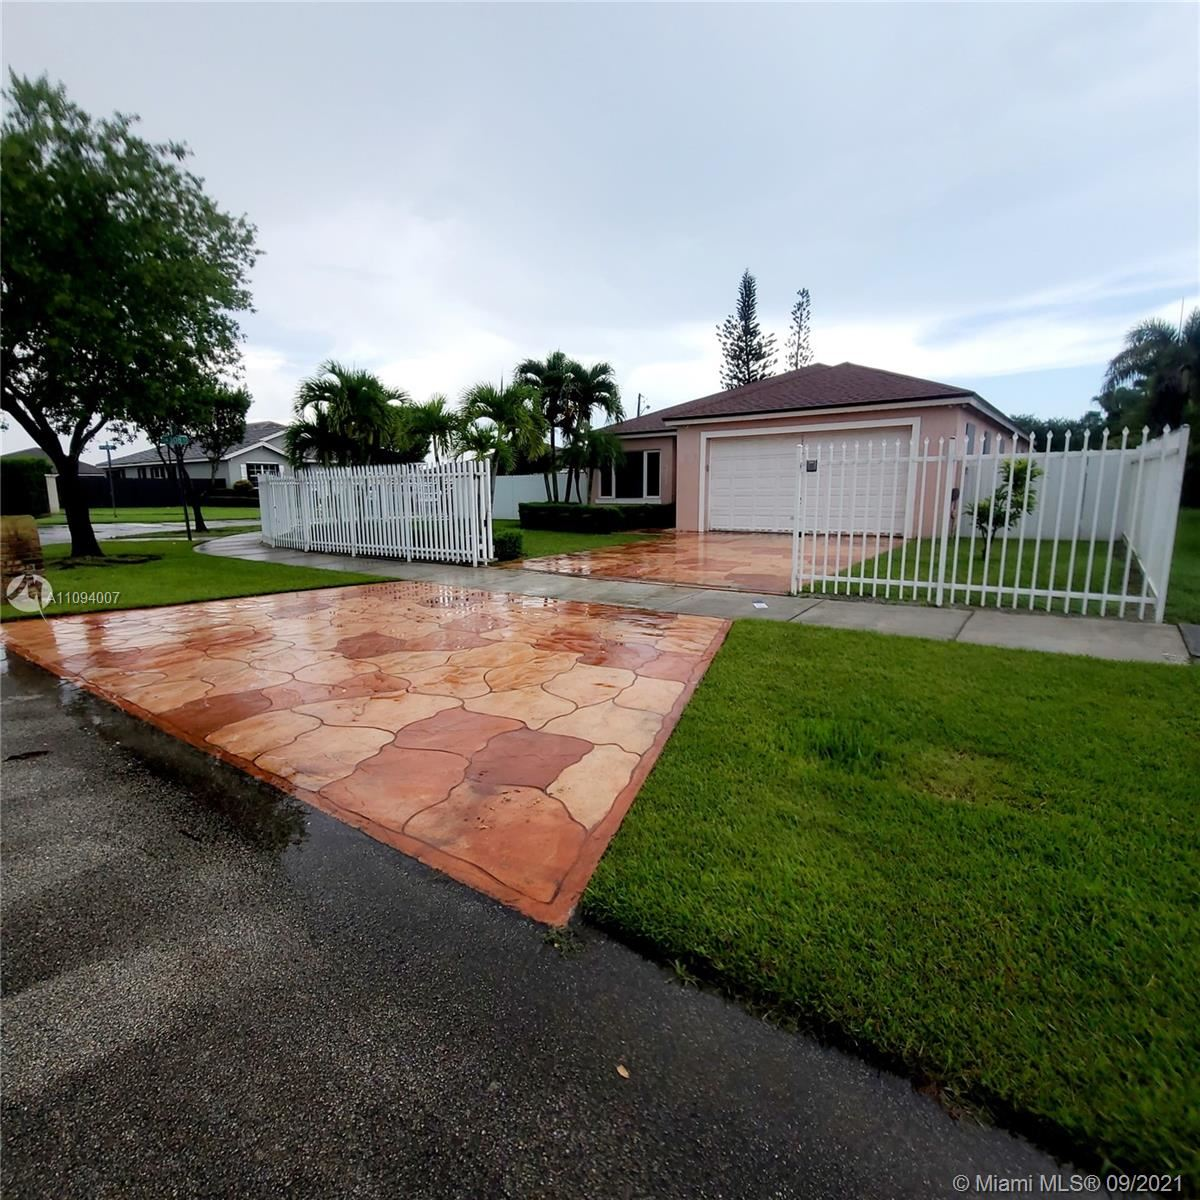 30821 SW 192nd Ave, Homestead, FL 33030 - #: A11094007